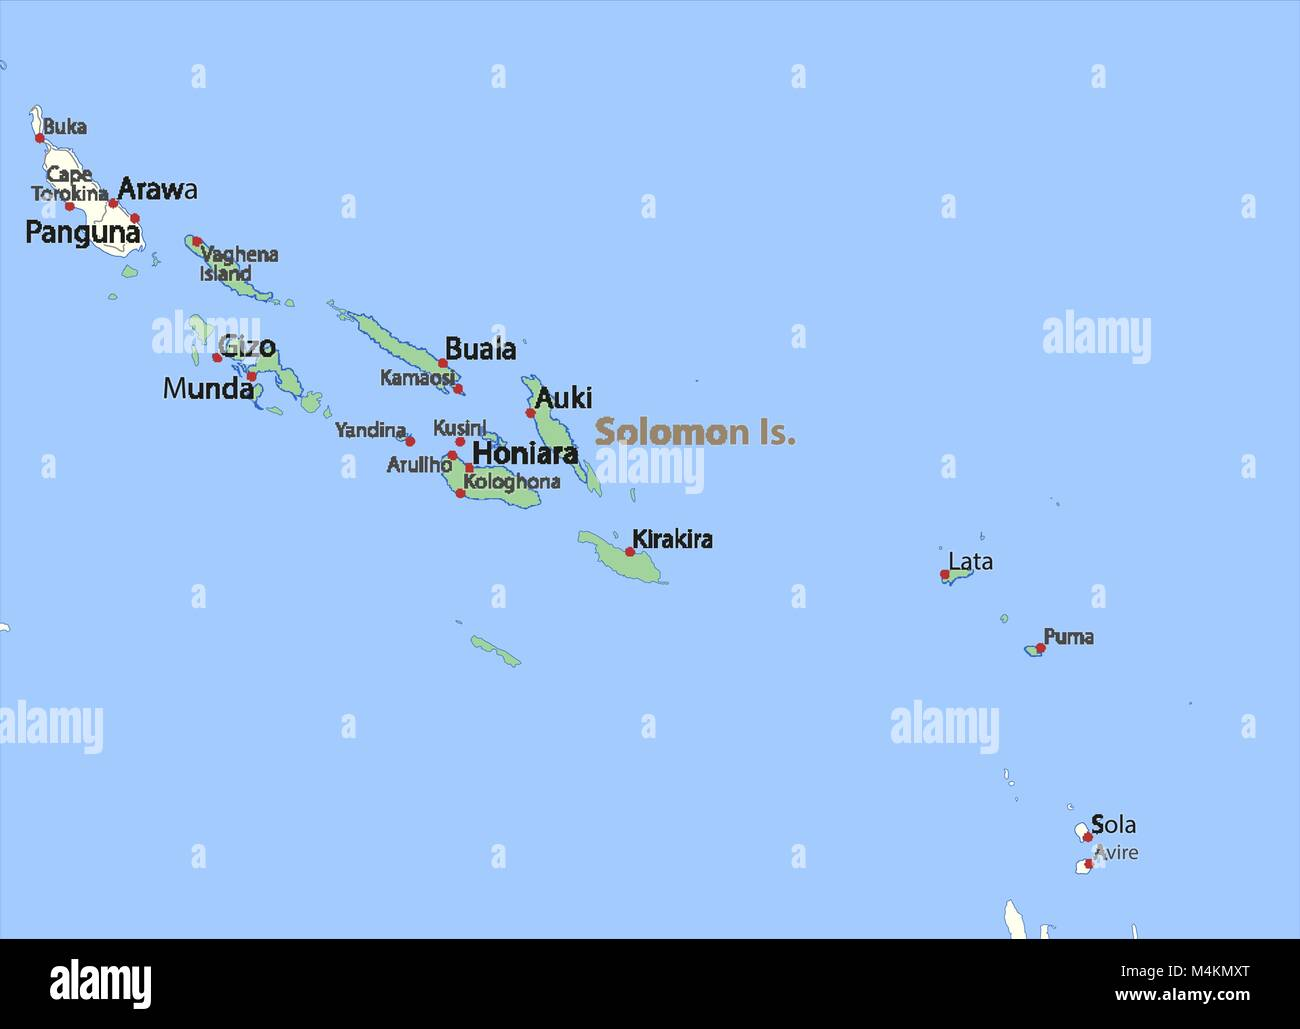 Map of Solomon Islands  Shows country borders, urban areas